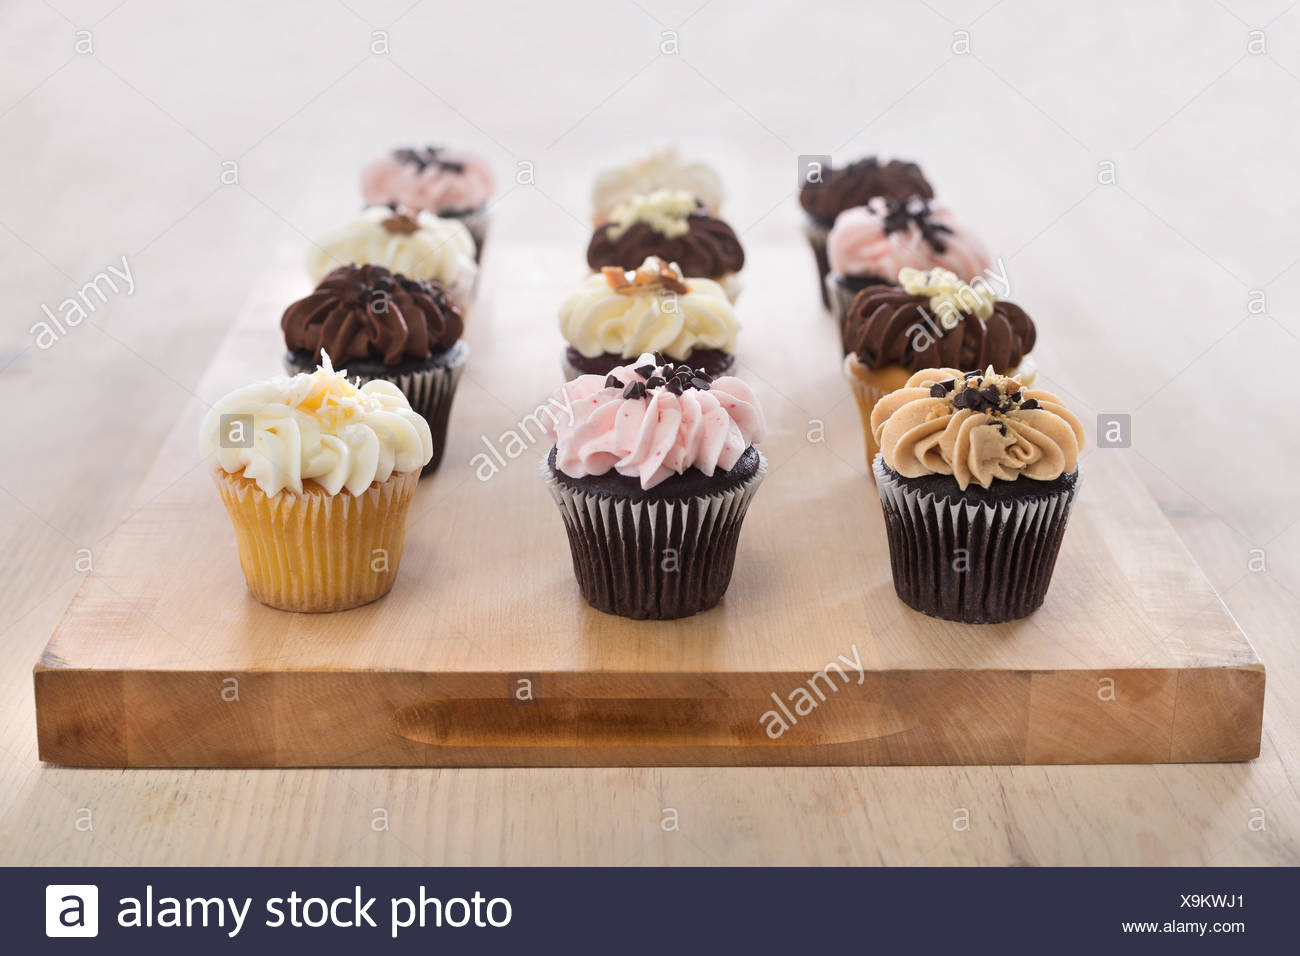 Assorted dozen cupcakes on wooden cutting board. Light wood, bright setting. Stock Photo